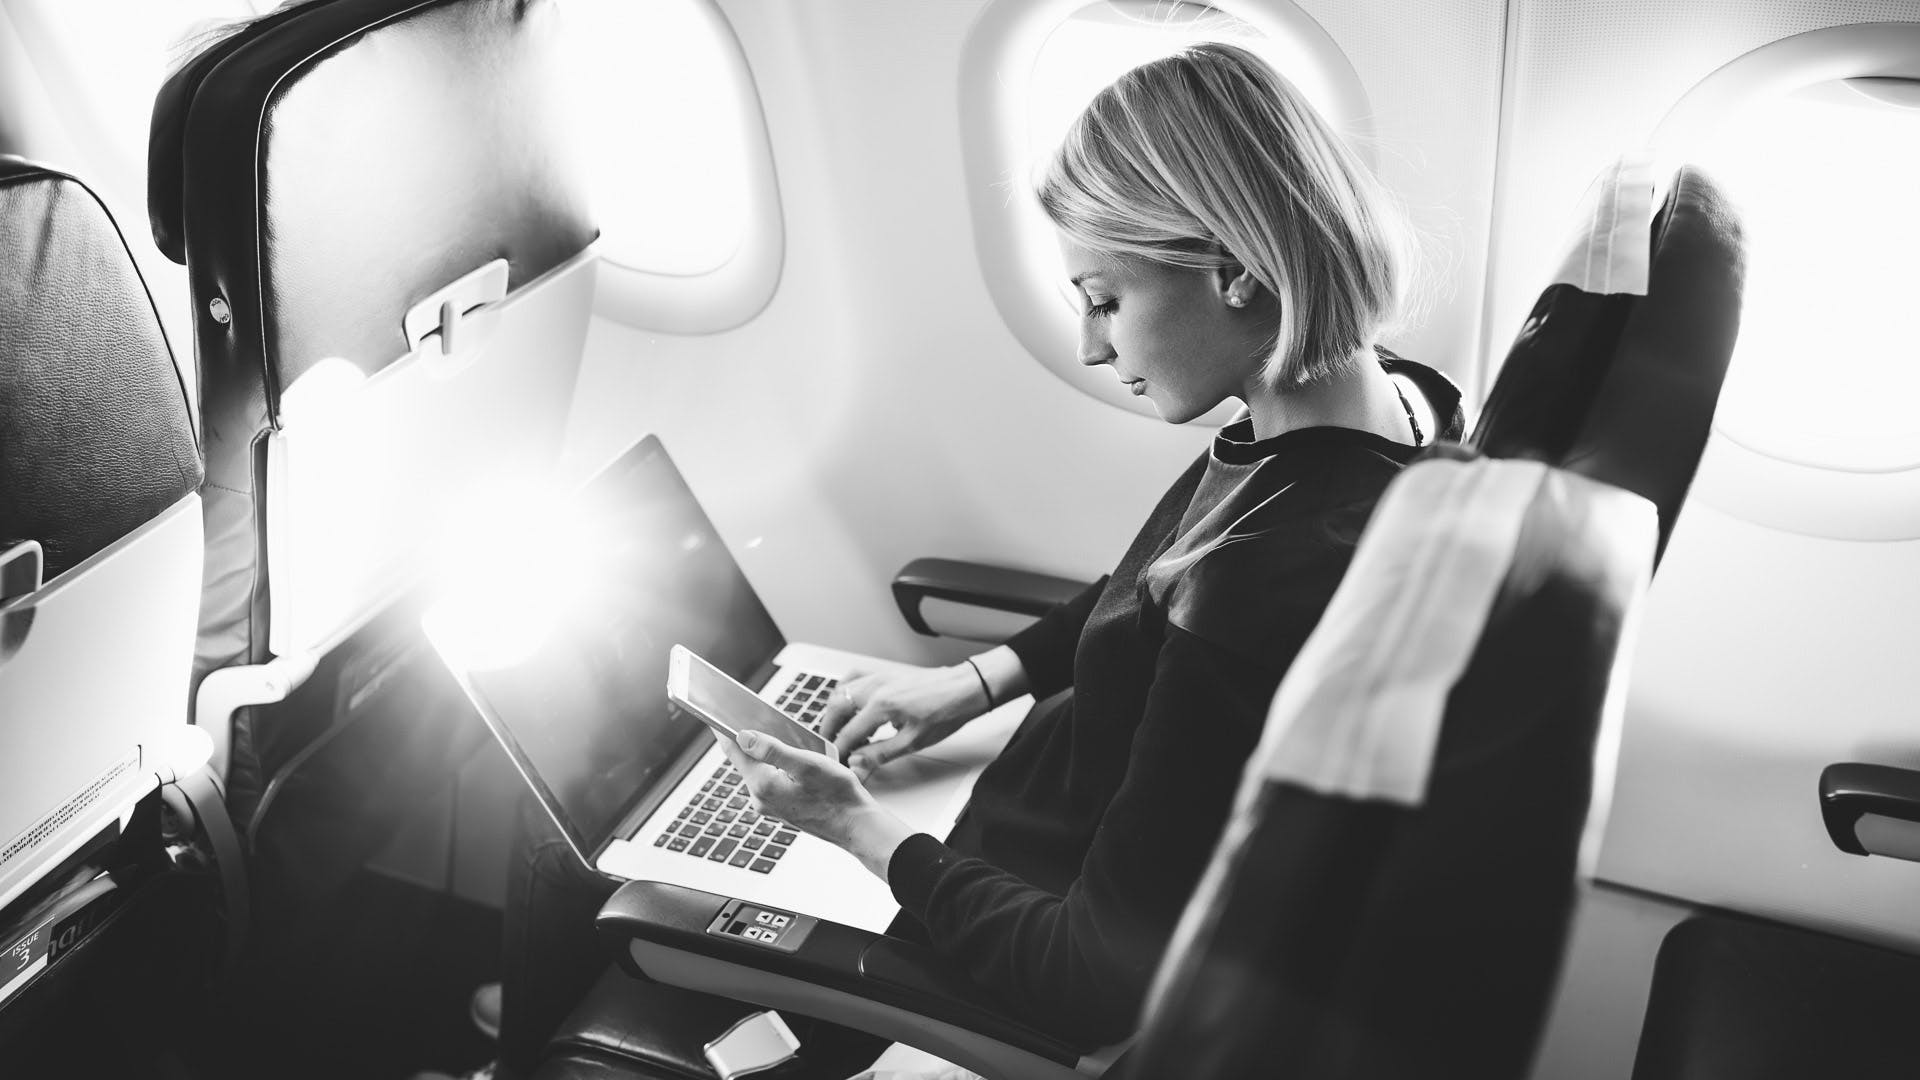 Employee working on a computer on board an aircraft